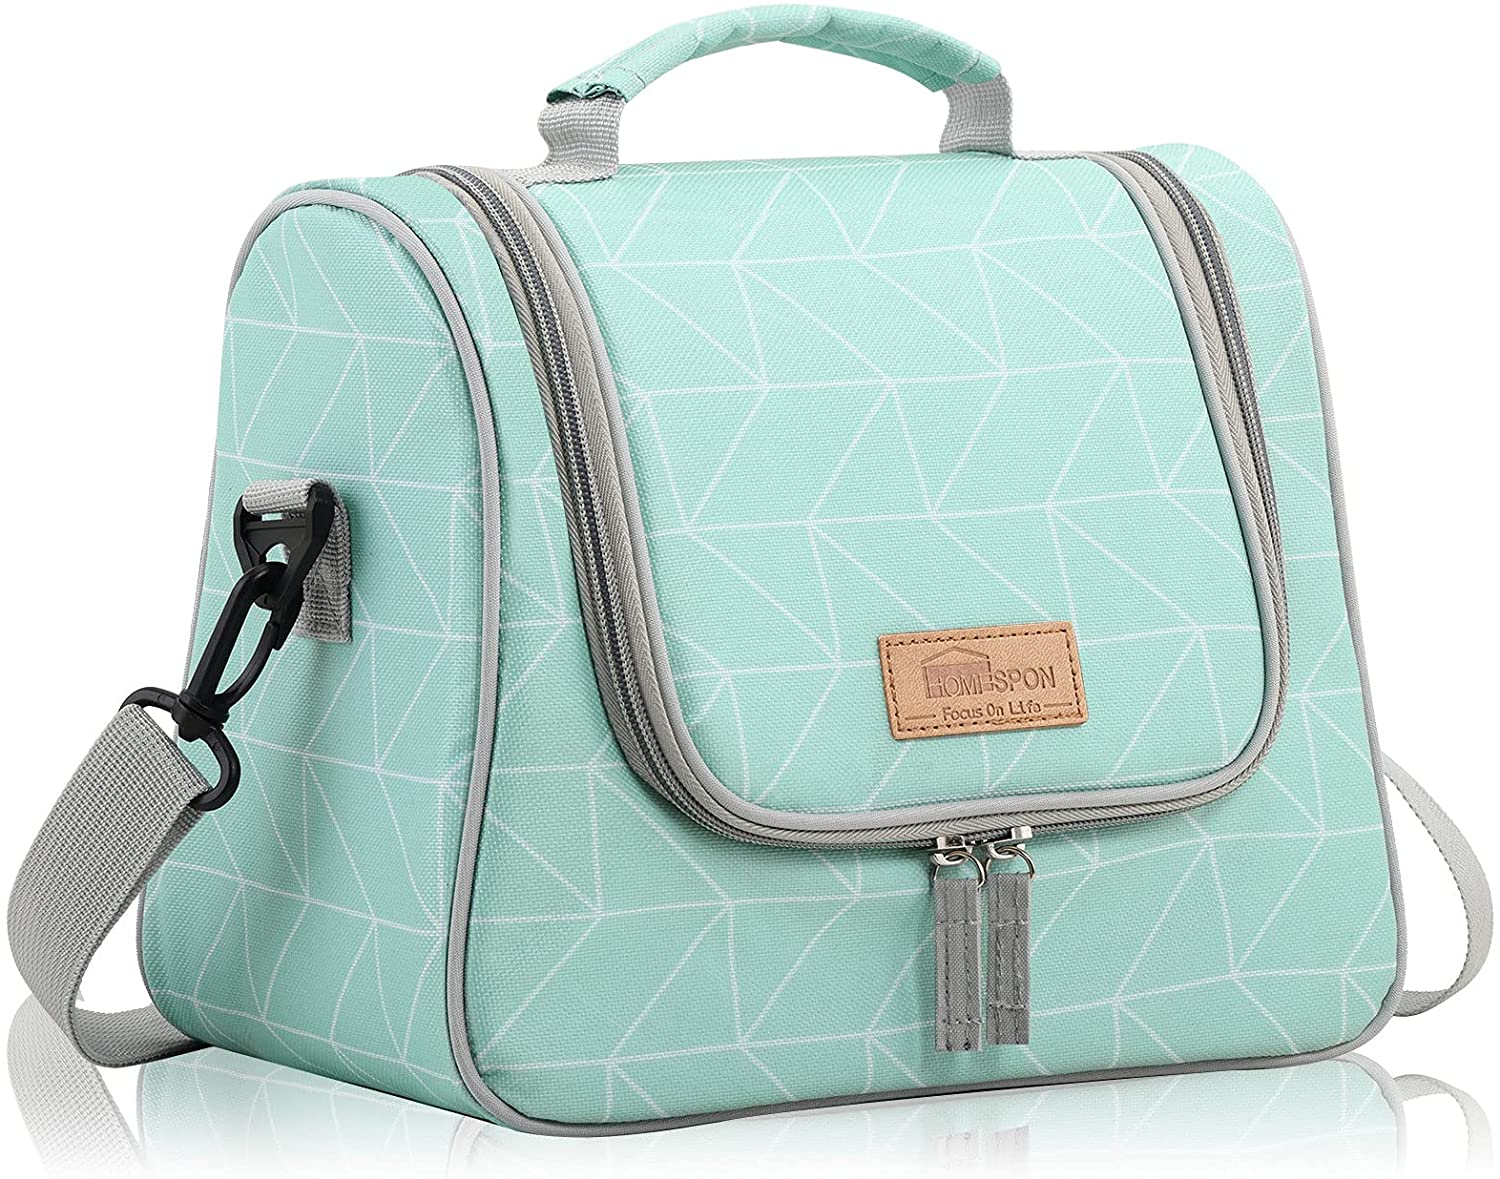 Opening large release sale HOMESPON Insulated Lunch Outlet SALE Bag for Cooler Tote Woman R Fashionable